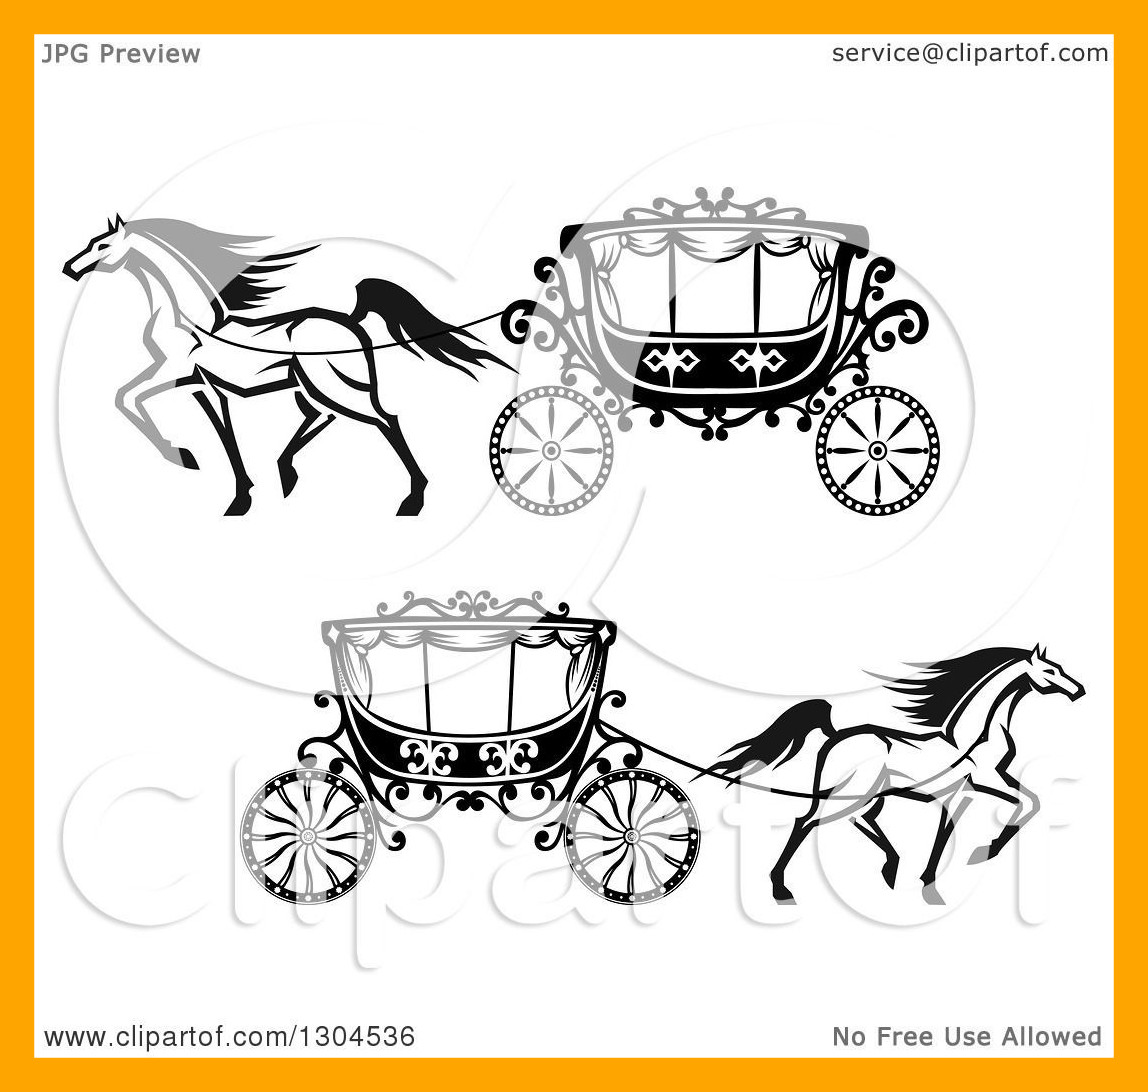 1148x1092 Marvelous Horse And Buggy Drawing At Getdrawings For Personal Use